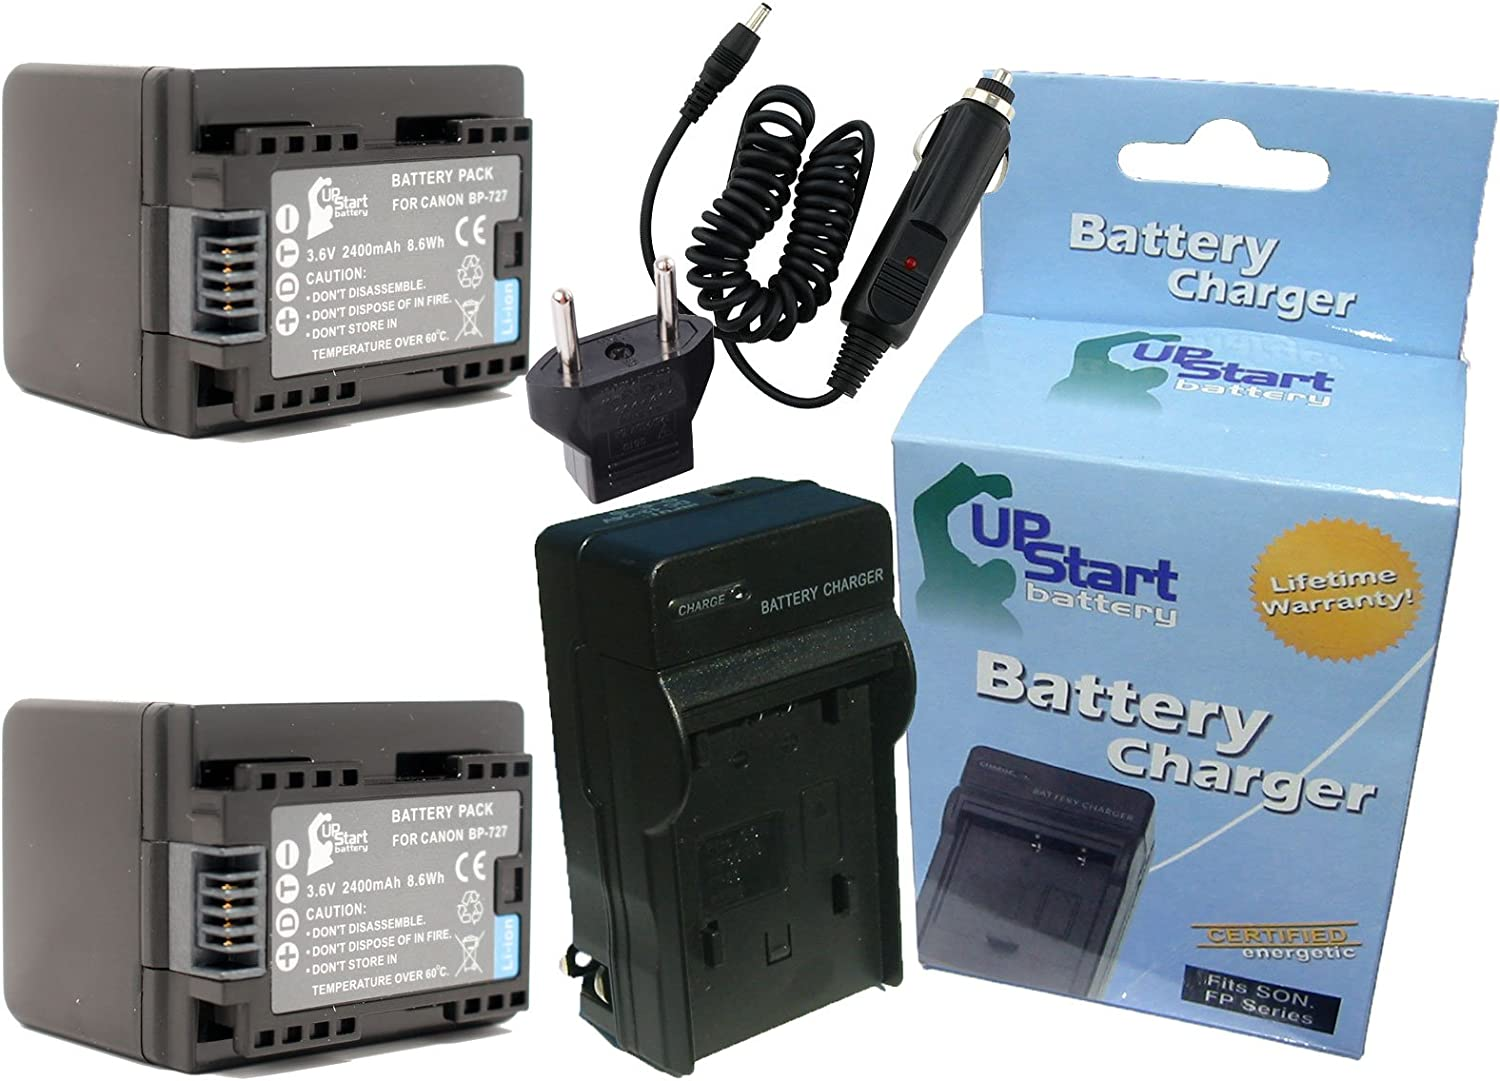 2 Pack Replacement for Canon HF R600 Battery 2400mAh 3.6V Lithium-Ion Charger with Car /& EU Adapters Compatible with Canon BP-727 BP-718 Digital Camcorder Battery and Charger